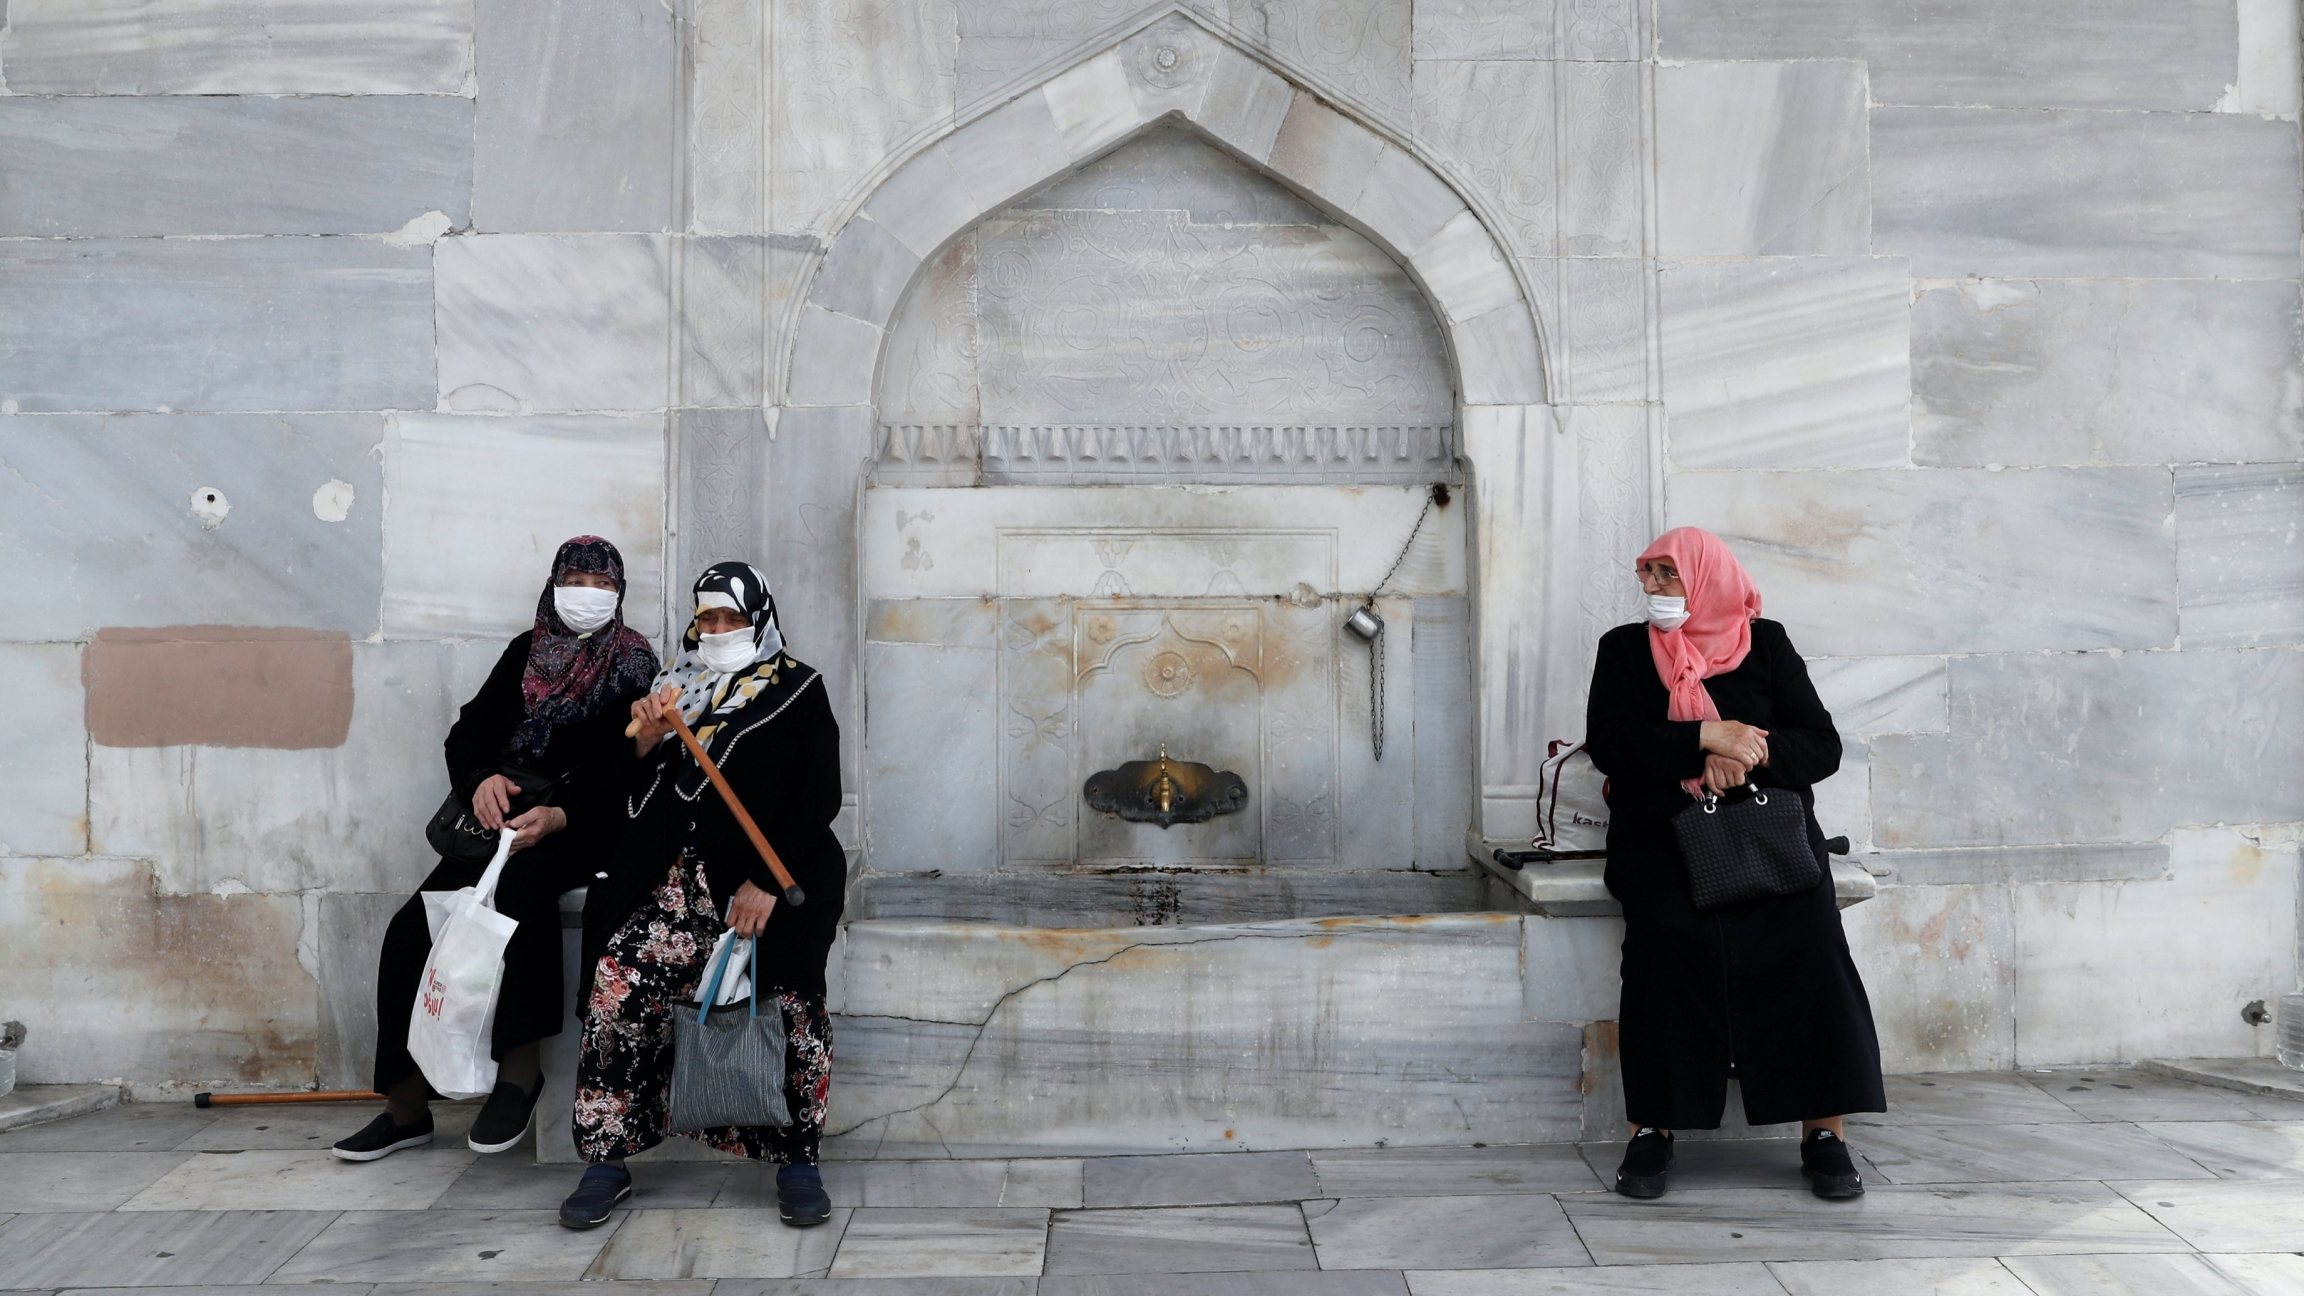 Three women wearing head scarves, long jackets and masks by a gray fountain